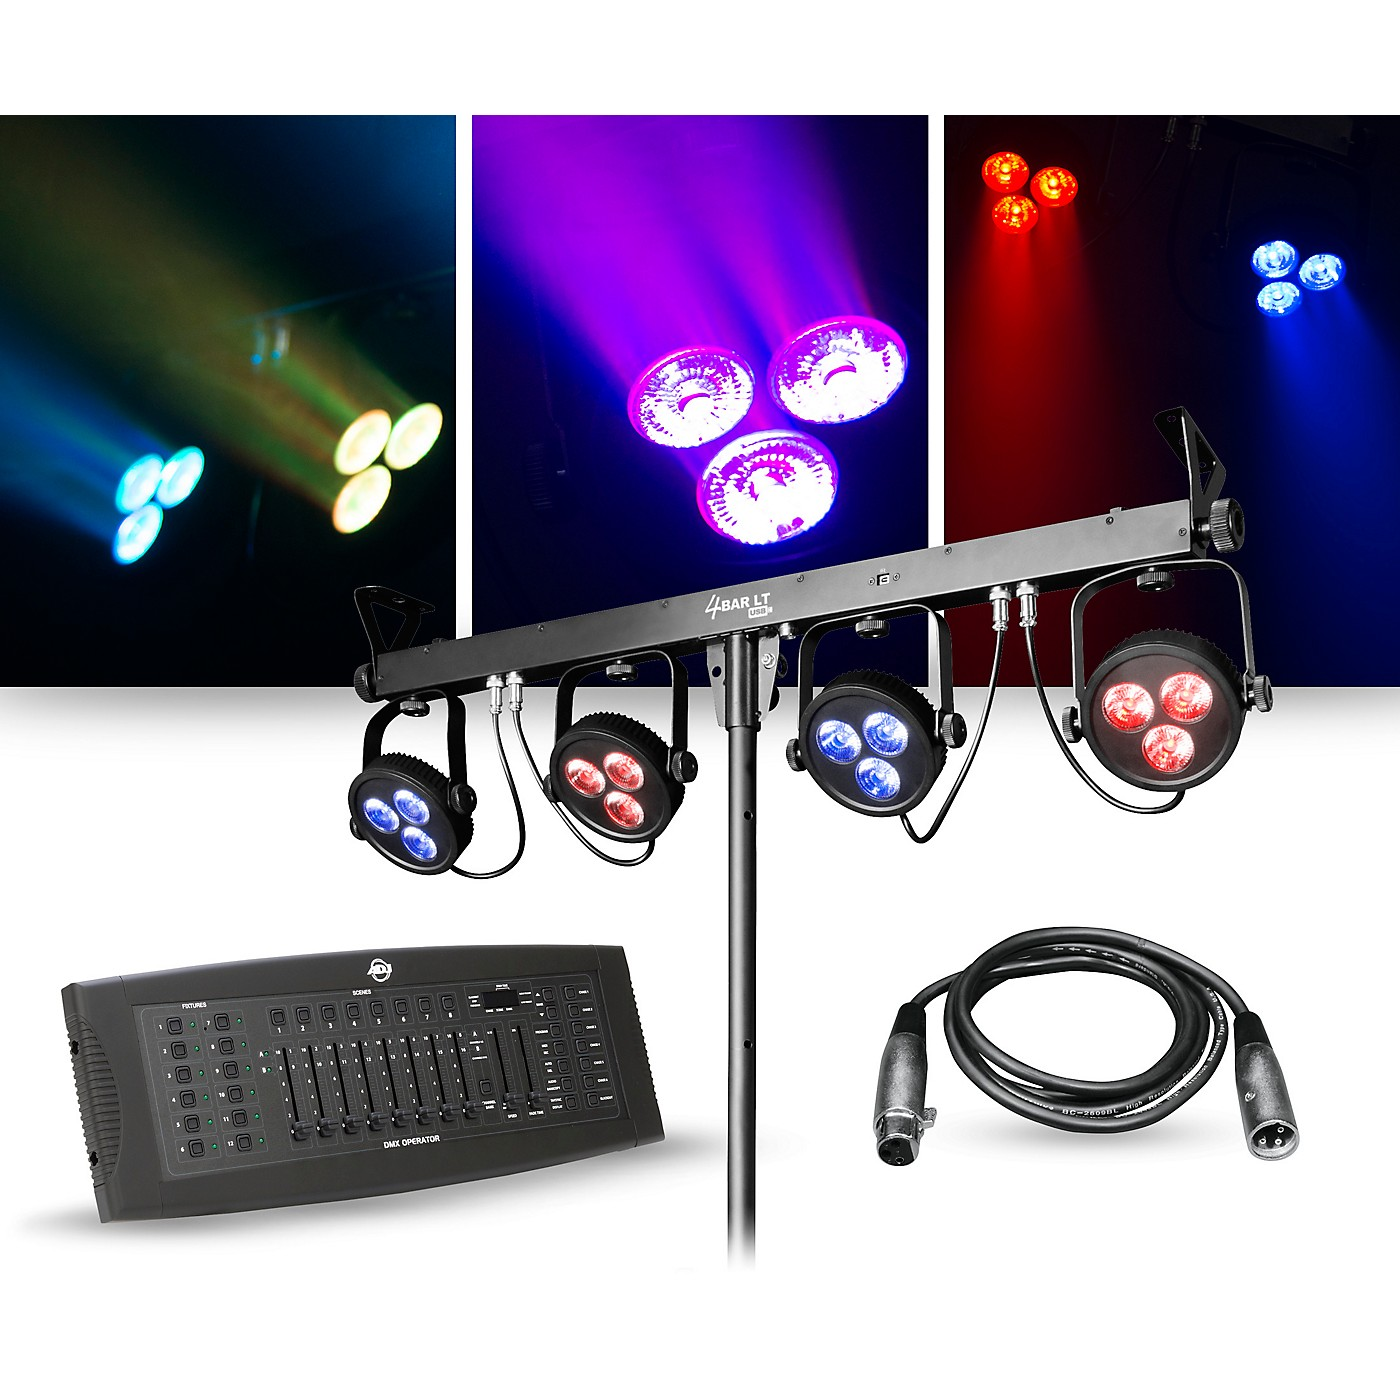 CHAUVET DJ Lighting Package with 4BAR LT USB RGB LED Fixture and DMX Operator Controller thumbnail